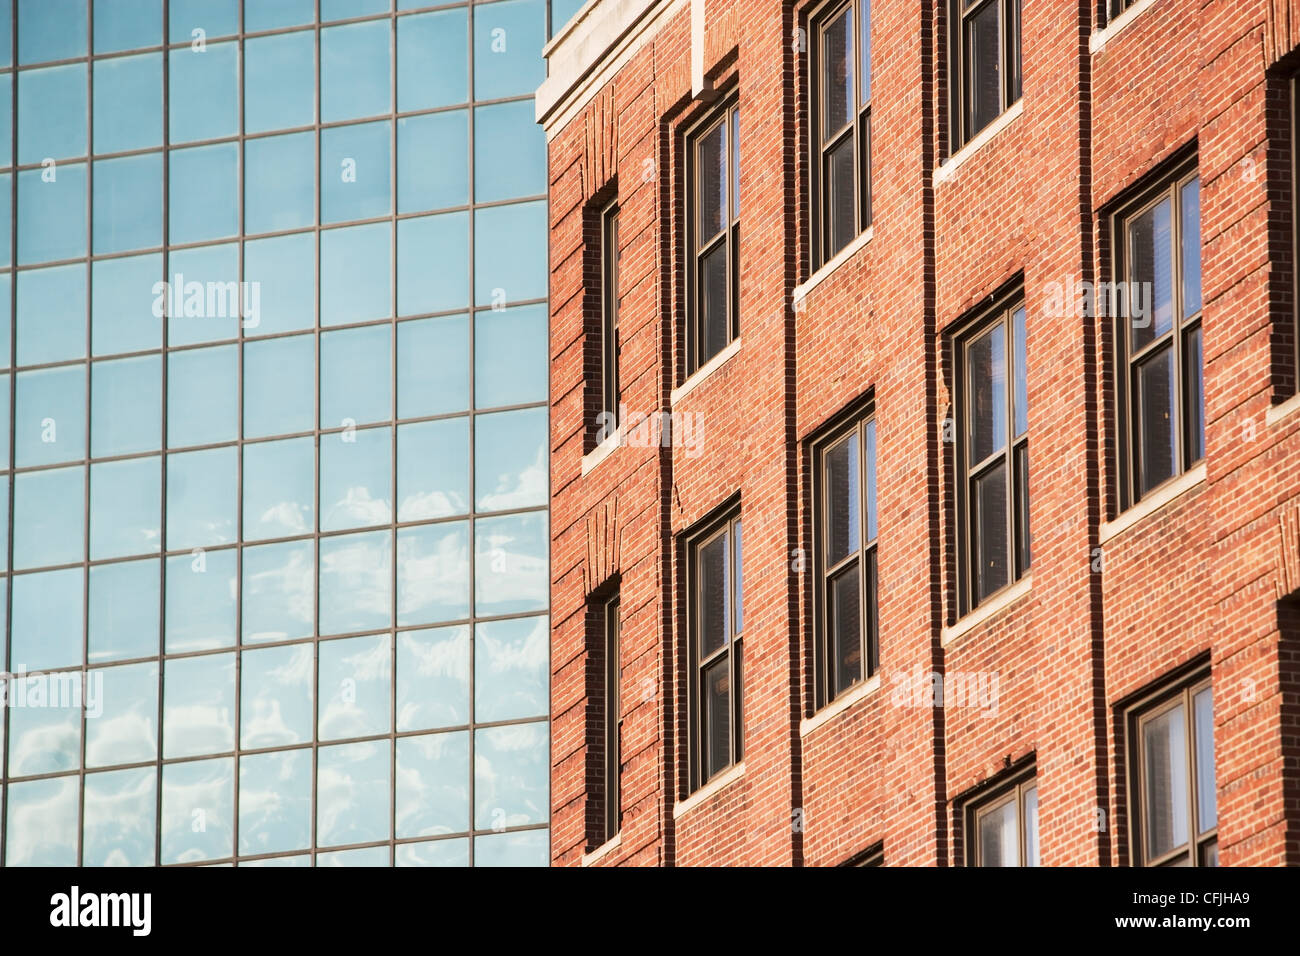 Glass and brick buildings - Stock Image